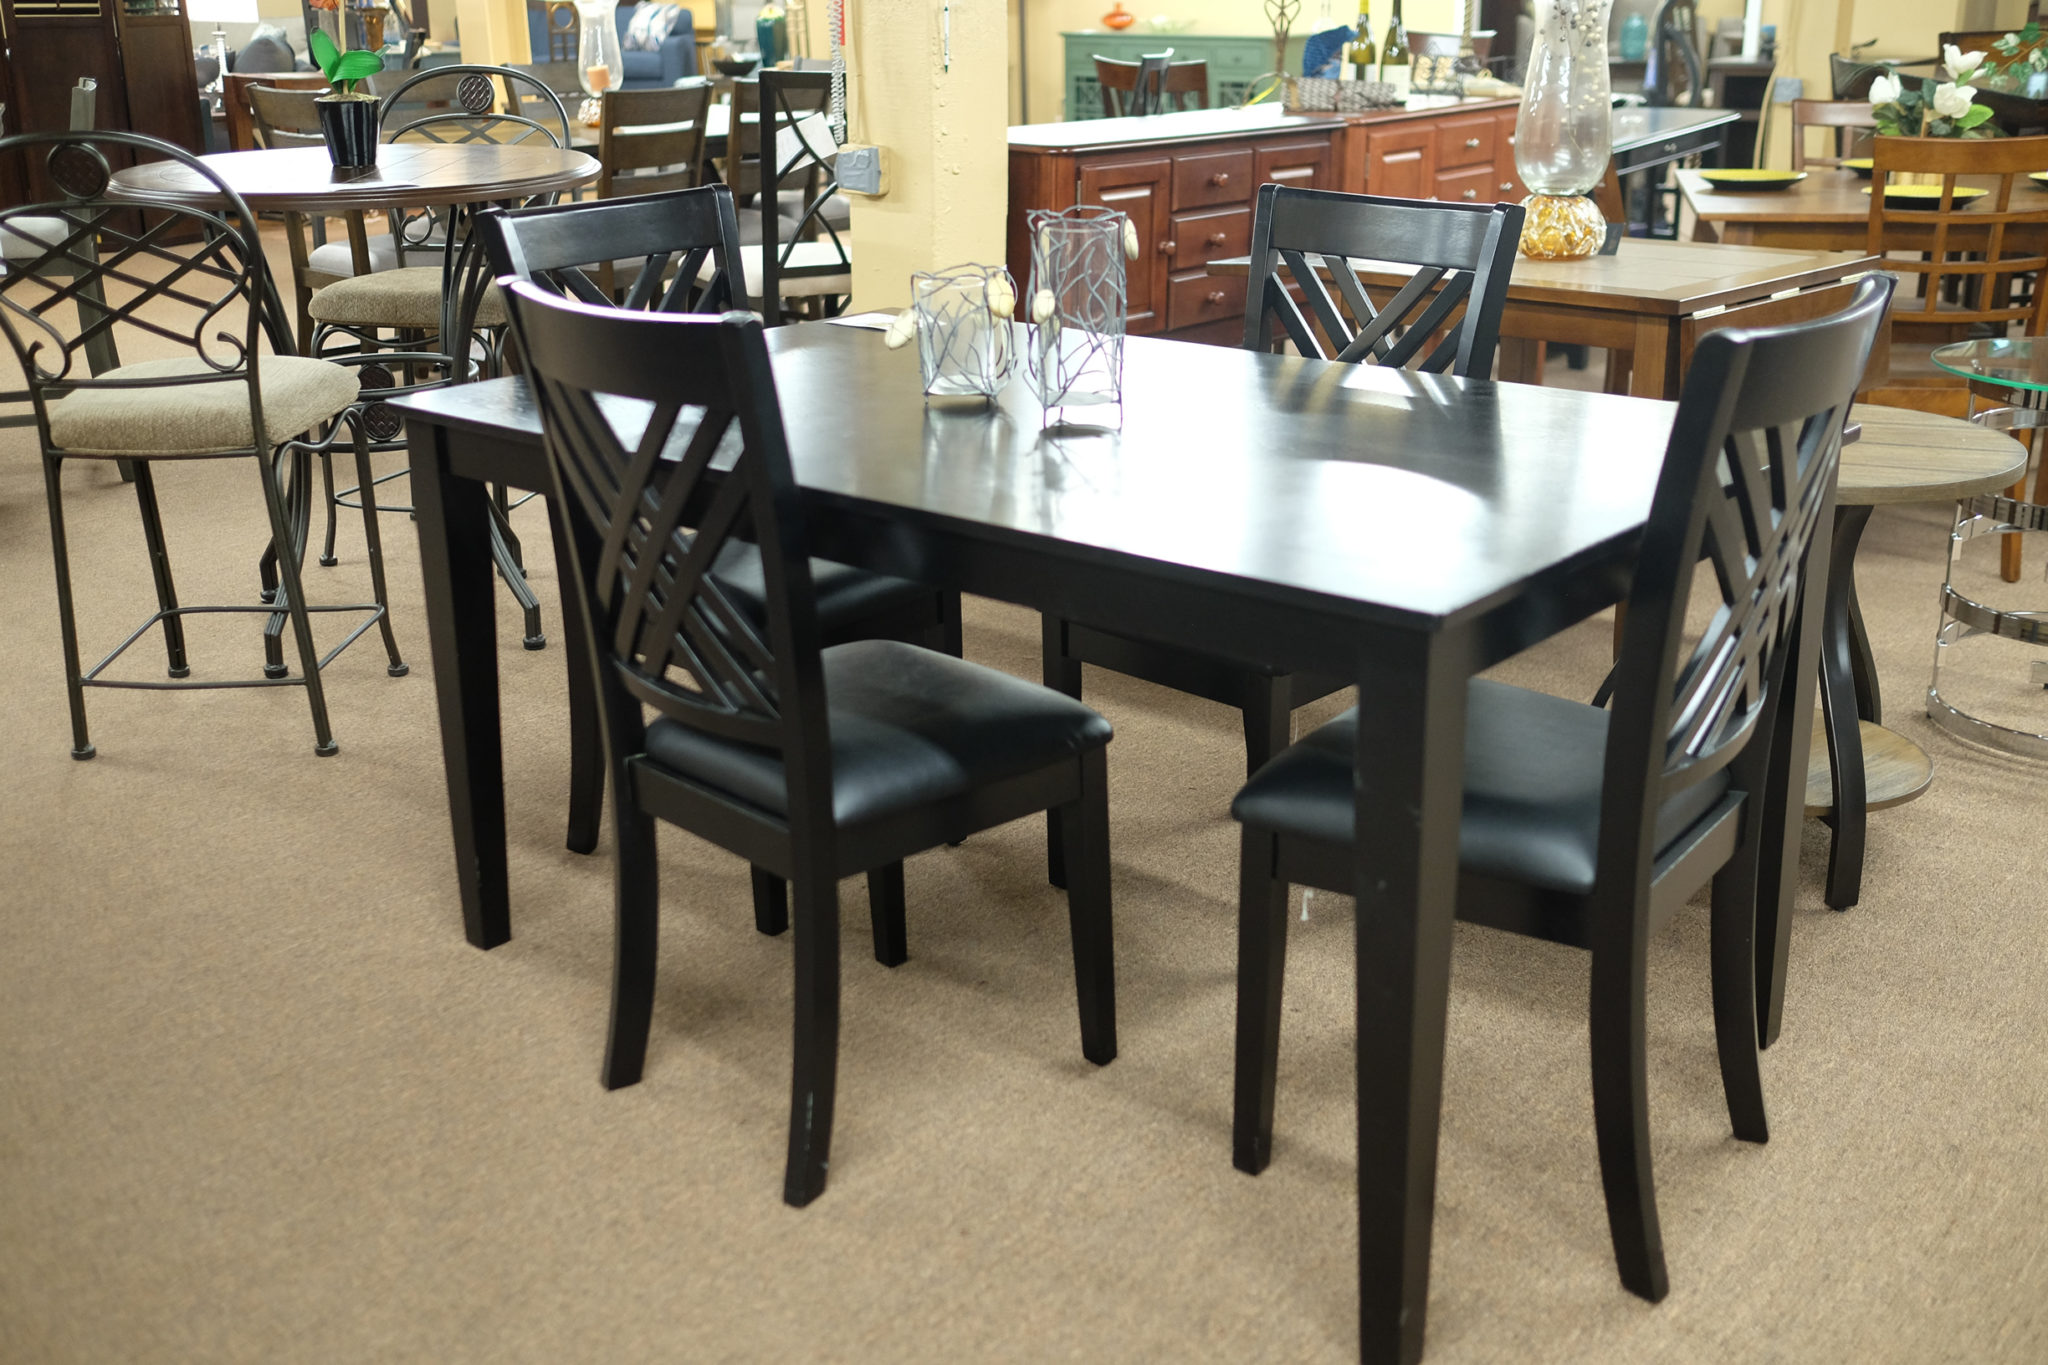 Stantard Brooklyn Dinette dining room set Pittsburgh Furniture